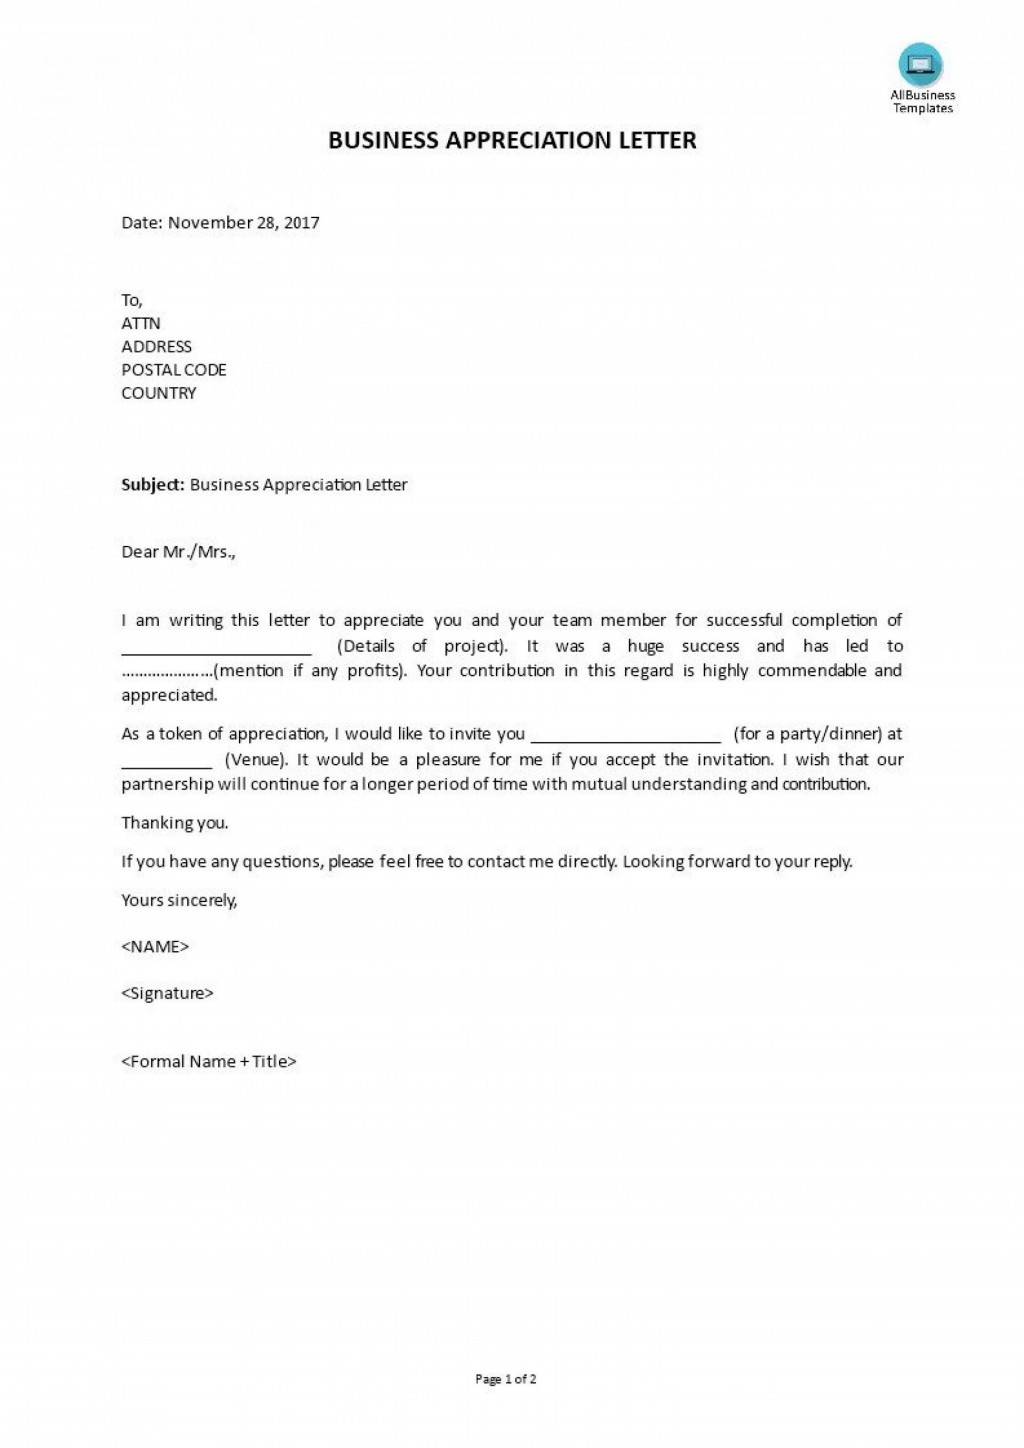 009 Fantastic Letter Of Mutual Understanding Template Inspiration Large